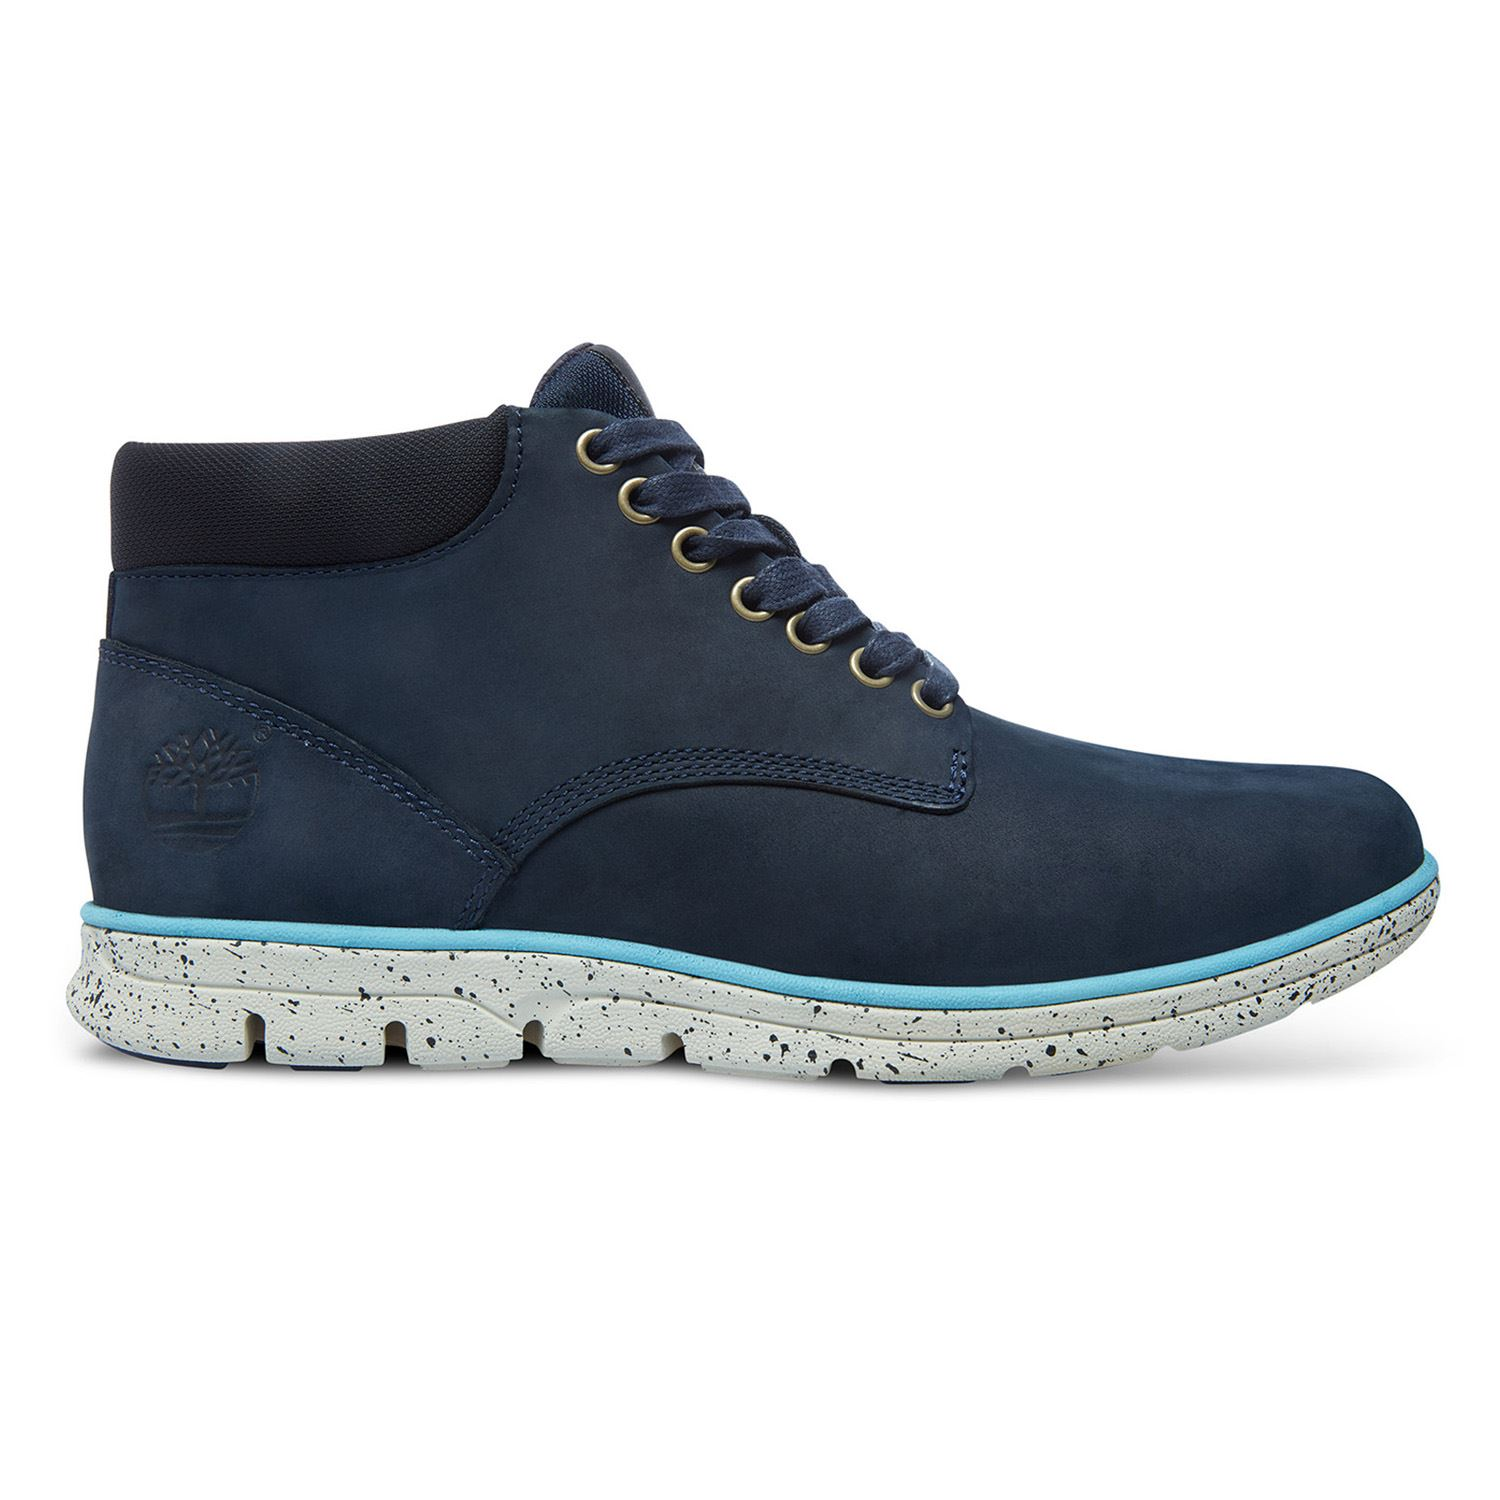 Shop for the Stemar Trieste Suede Chukka Boots Navy and the full Stemar collection at roeprocjfc.ga We carry a wide range of mens designer shoes and accessories at .